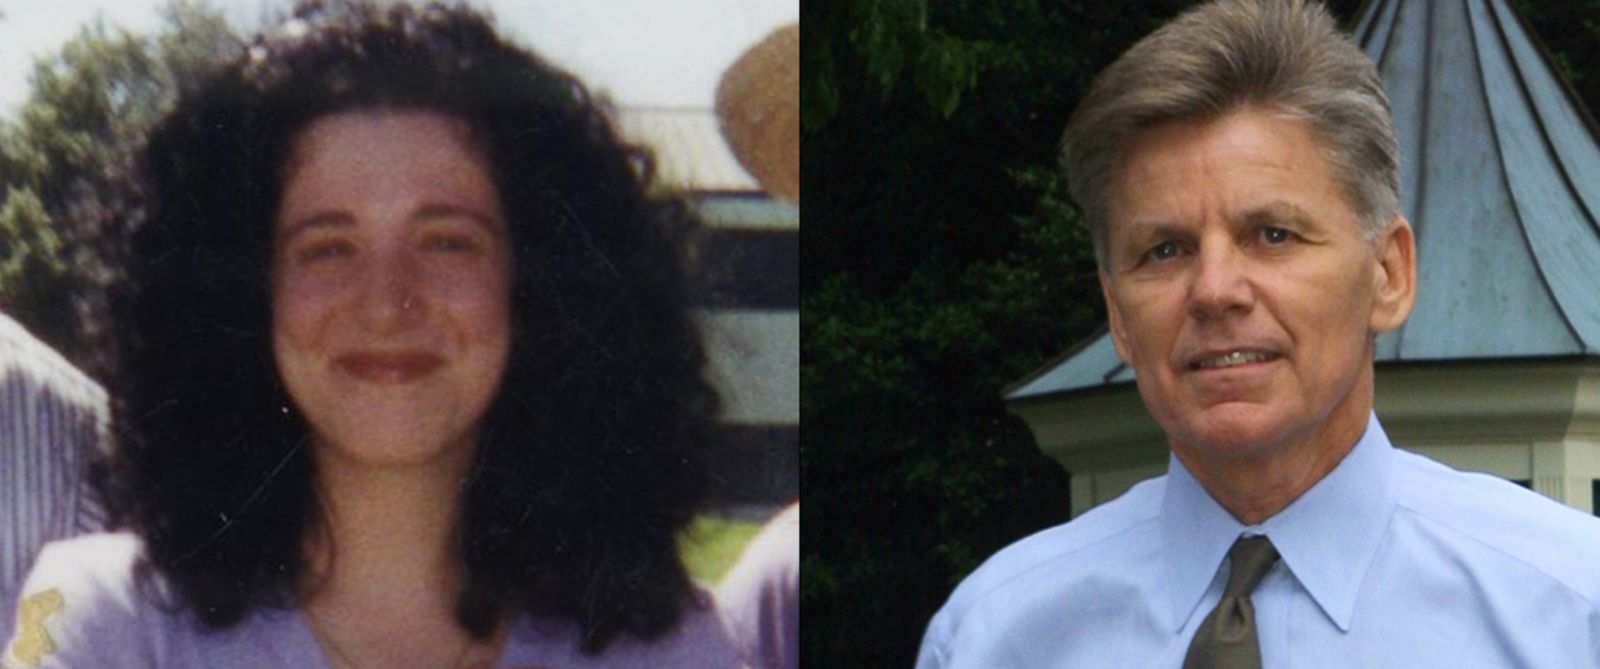 federal bureau of prisons videos at abc news video archive at former rep gary condit breaks silence 15 years after chandra levy murder scandal